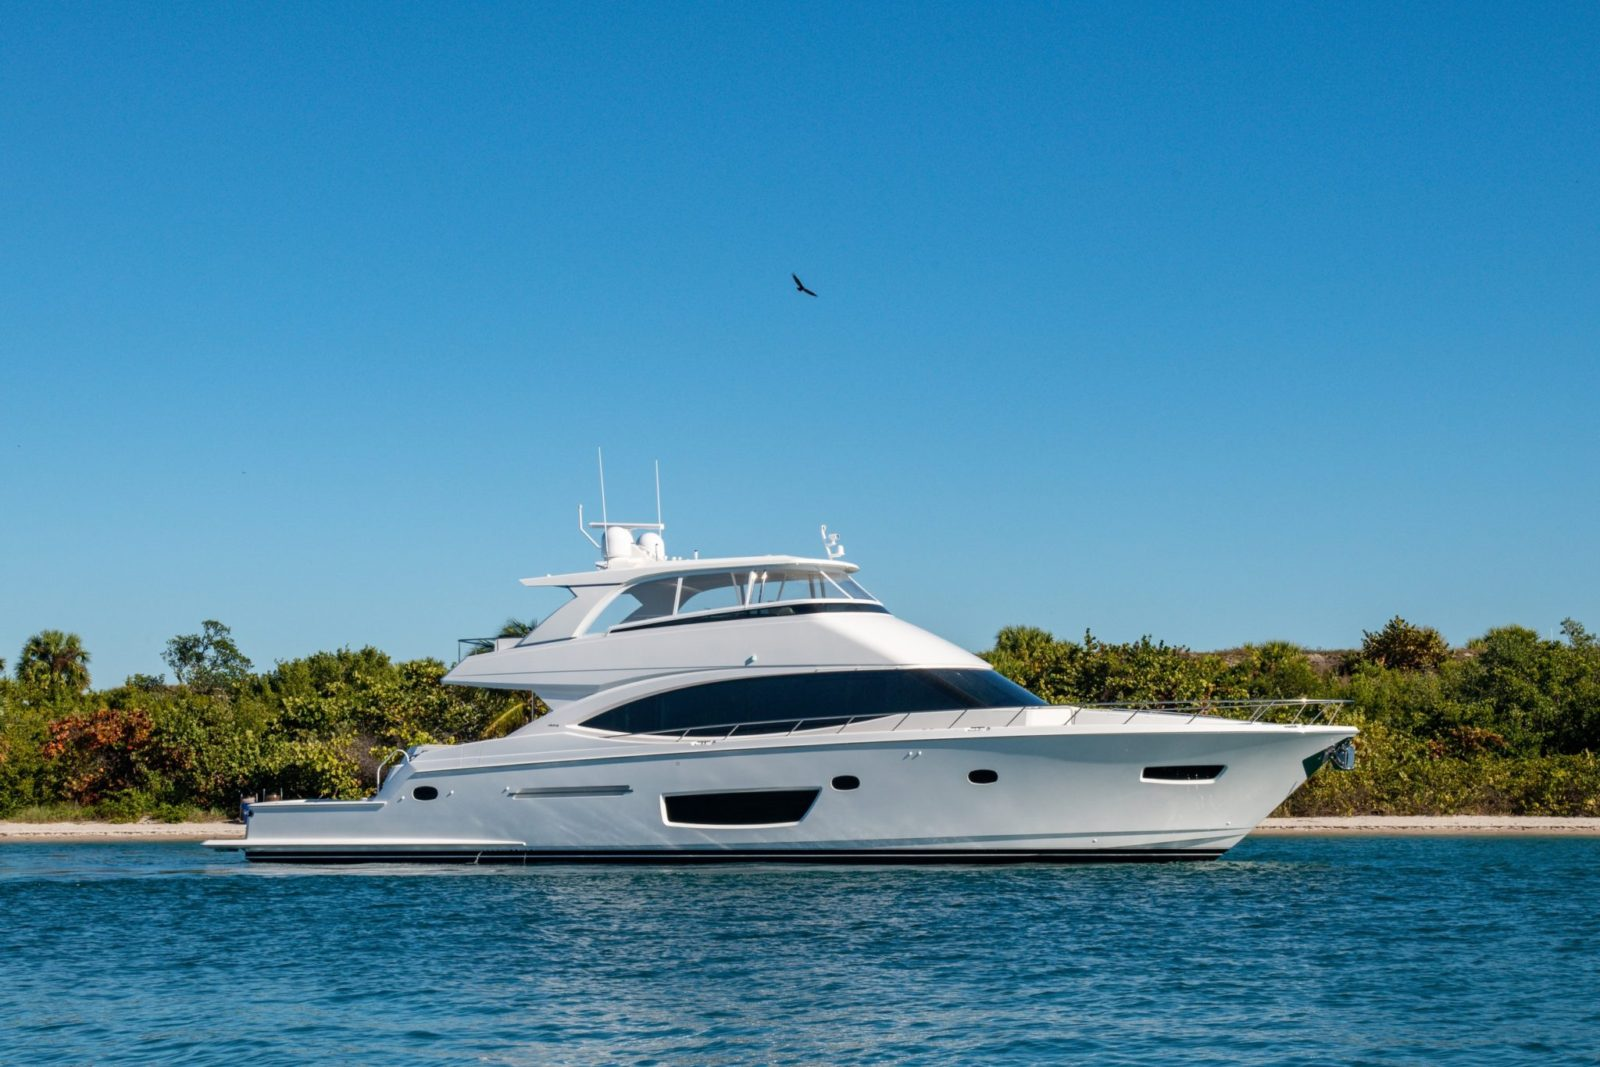 Luxury yacht for Sale | 82 Cockpit Motor Yacht by Viking Yachts